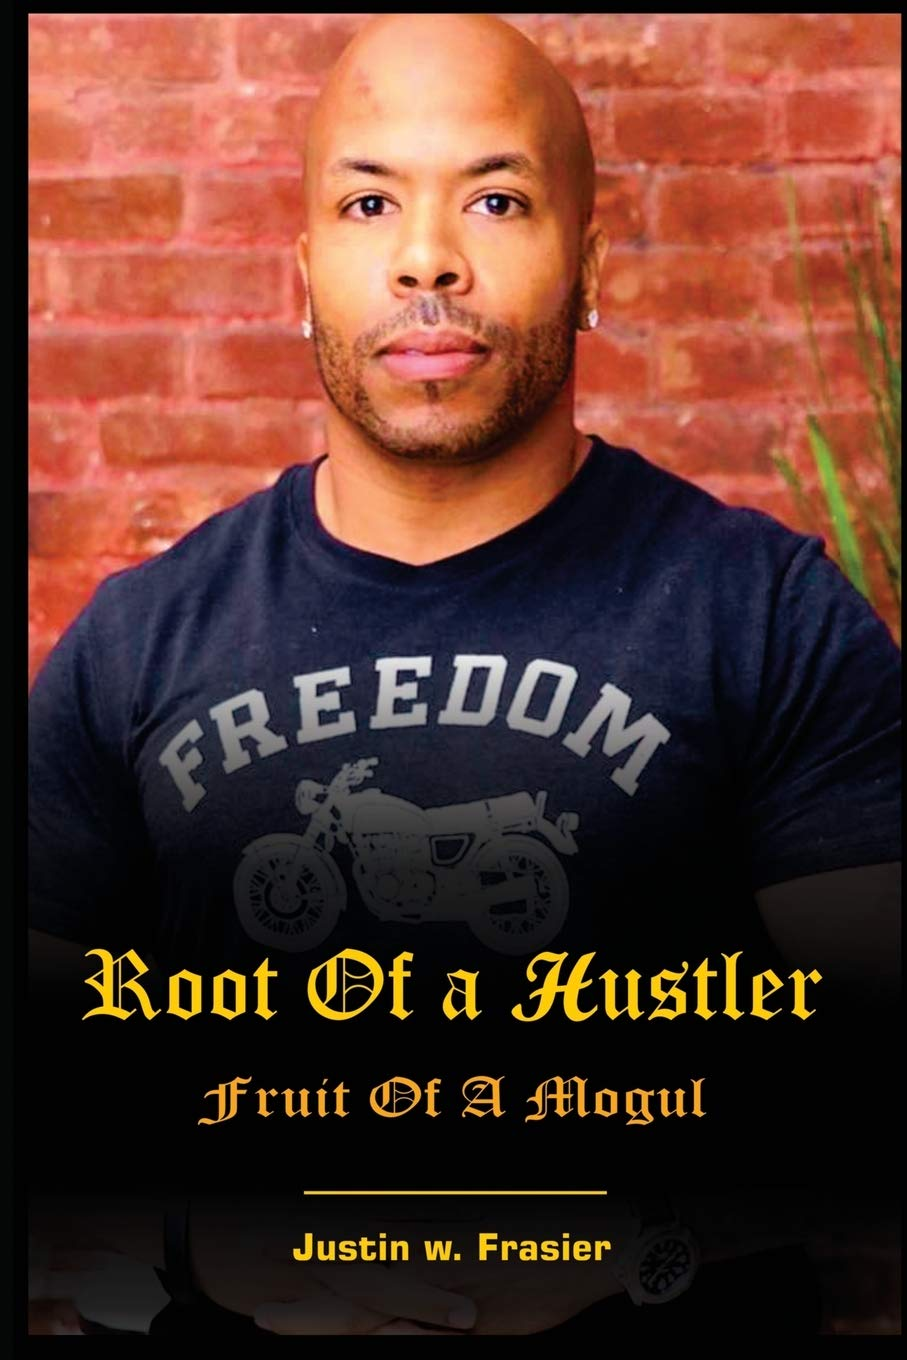 Root of a Hustler - Fruit of a Mogul: The autobiography of Justin W Frasier Based on a true story: